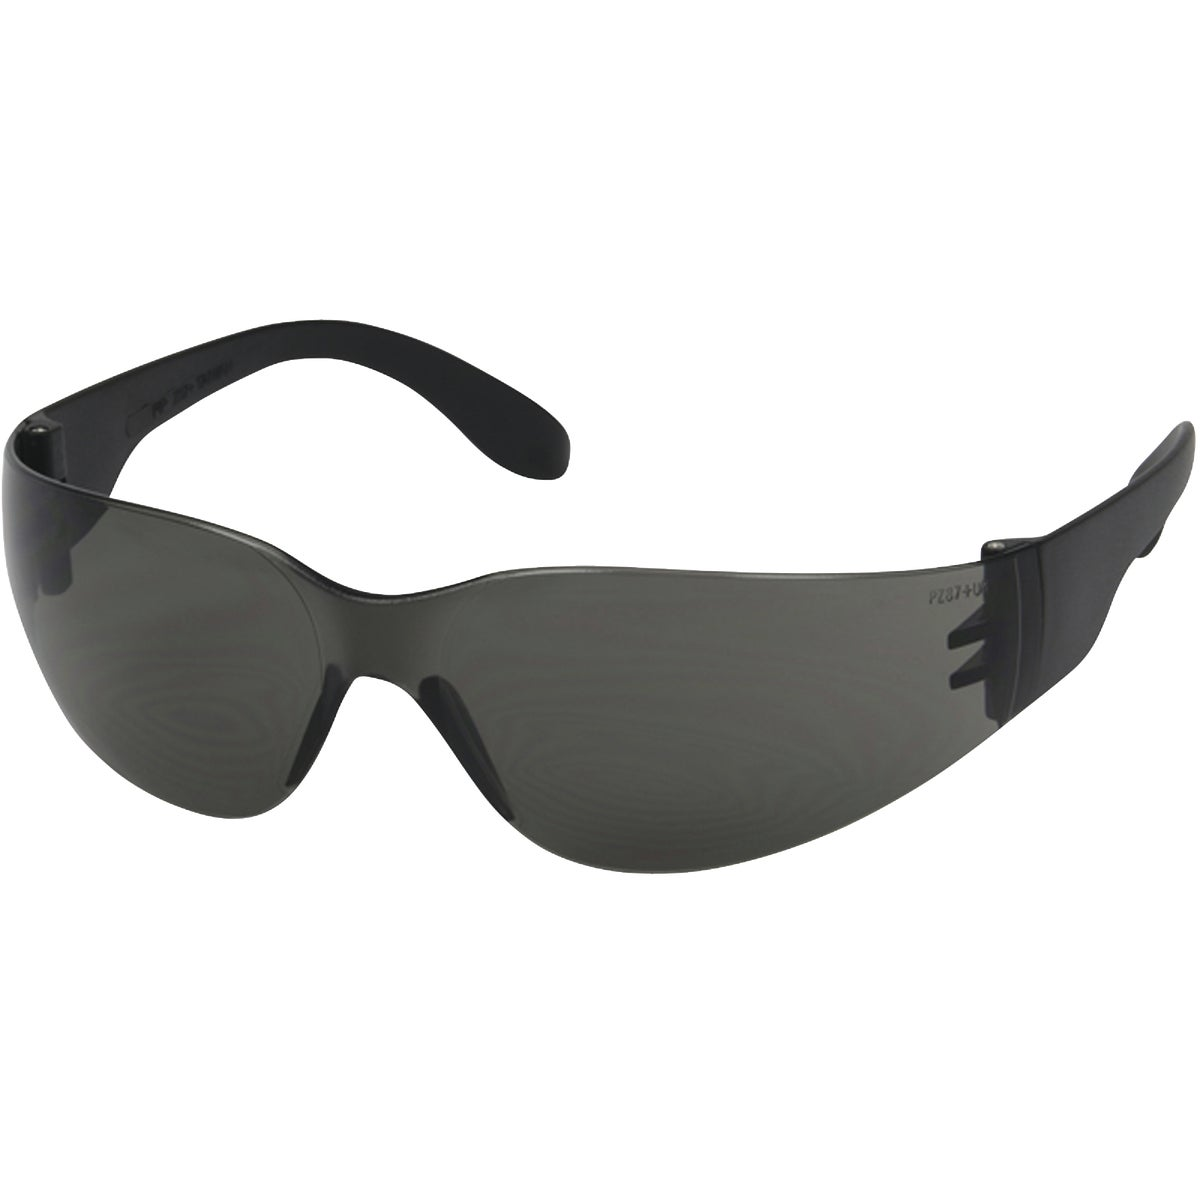 TINTED SAFETY GLASSES - 10006316 by Msa Safety